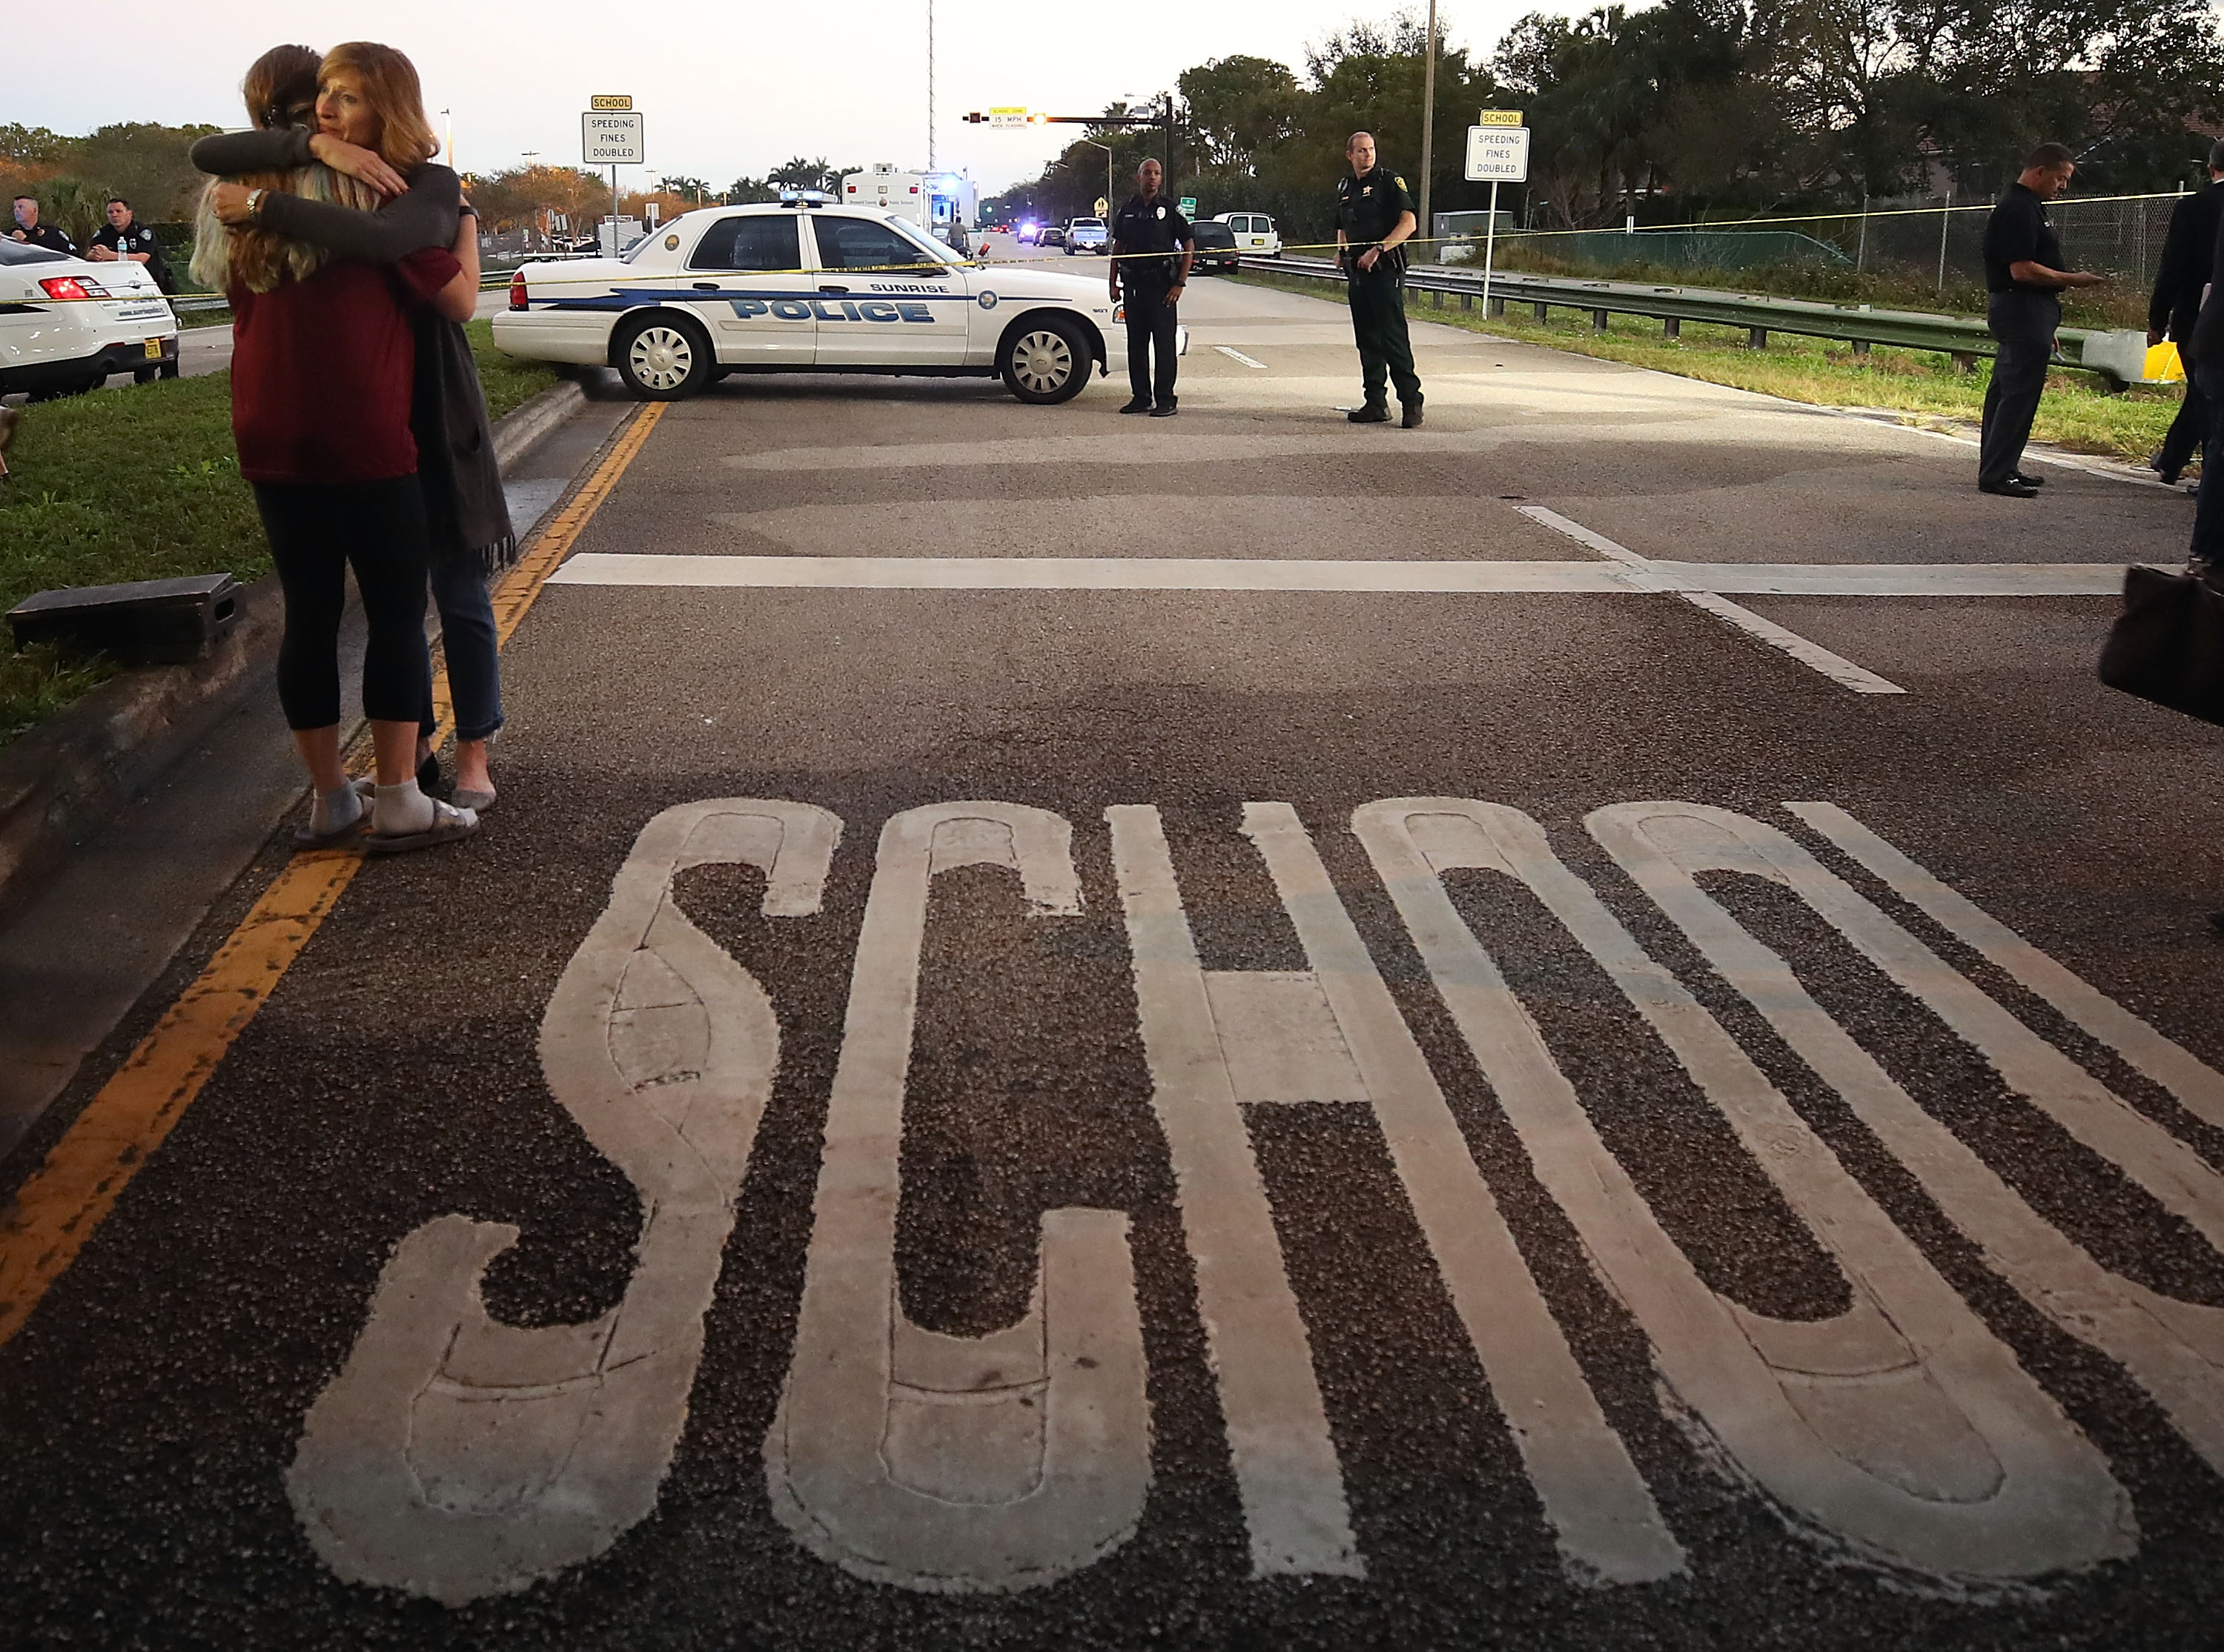 These Two Young Latinos Were Among the Victims of the Parkland, Florida School Shooting